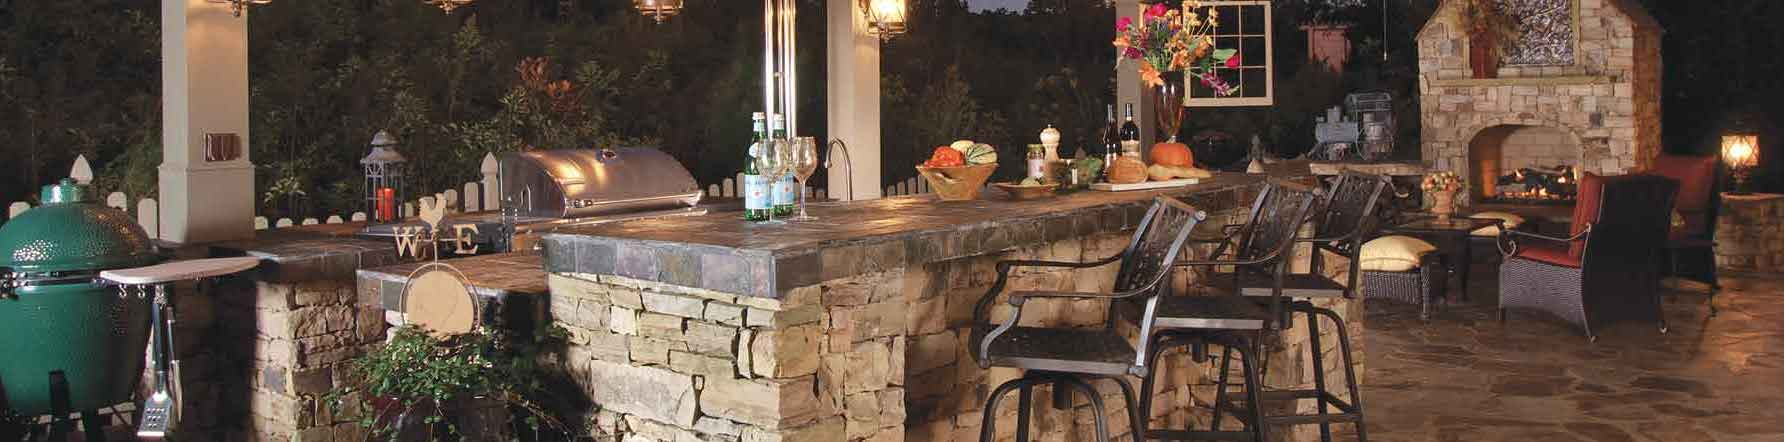 outdoor-kitchen-2sm